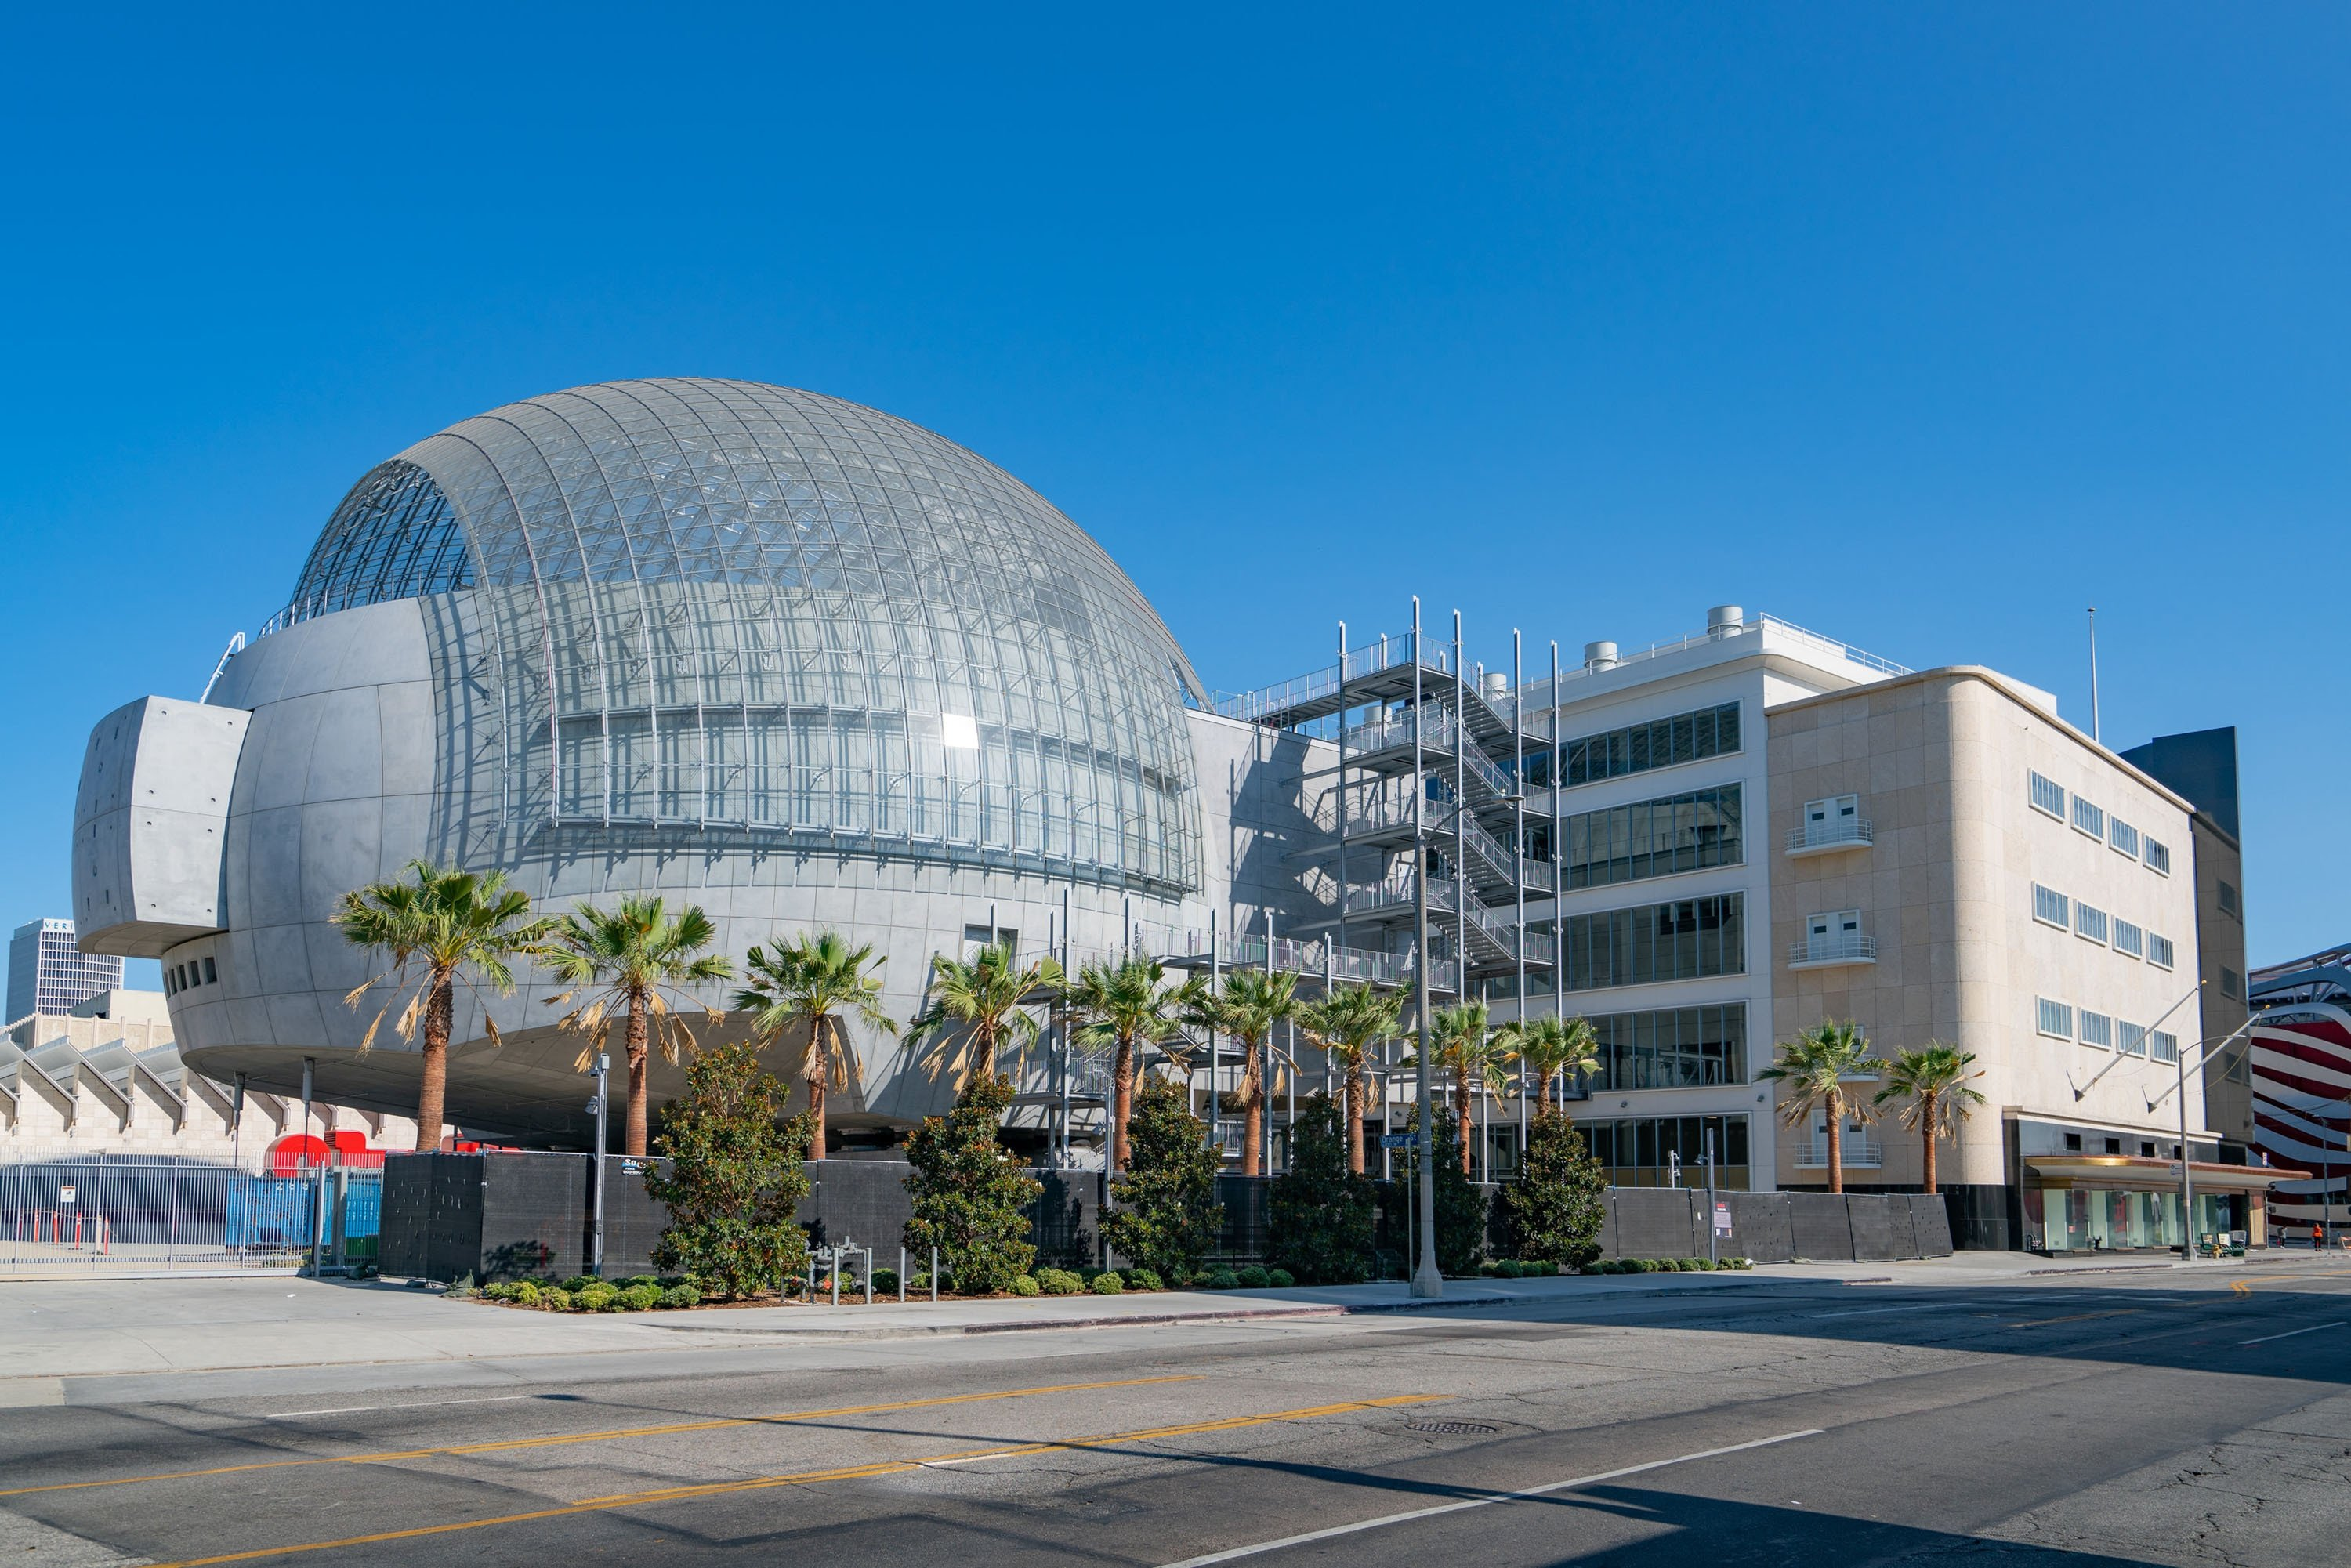 A general view of the Academy Museum of Motion Pictures and its attached spherical theater building, Los Angeles, California, U.S., Aug. 26, 2020.  (Getty Images)